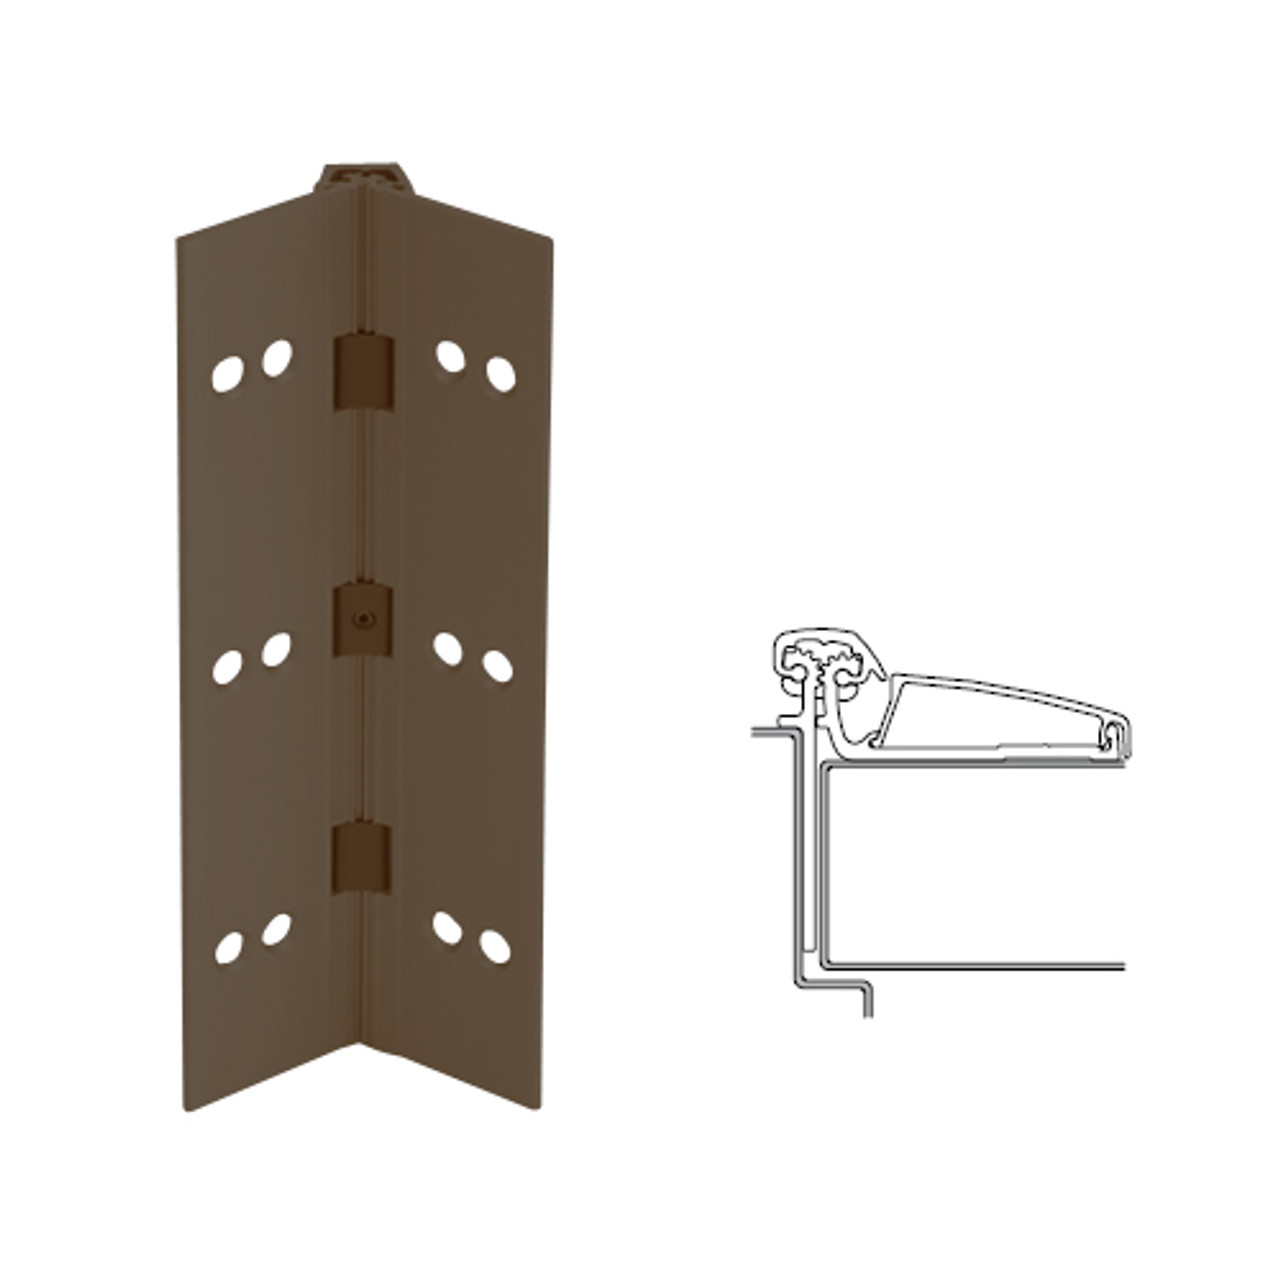 046XY-313AN-83 IVES Adjustable Half Surface Continuous Geared Hinges in Dark Bronze Anodized